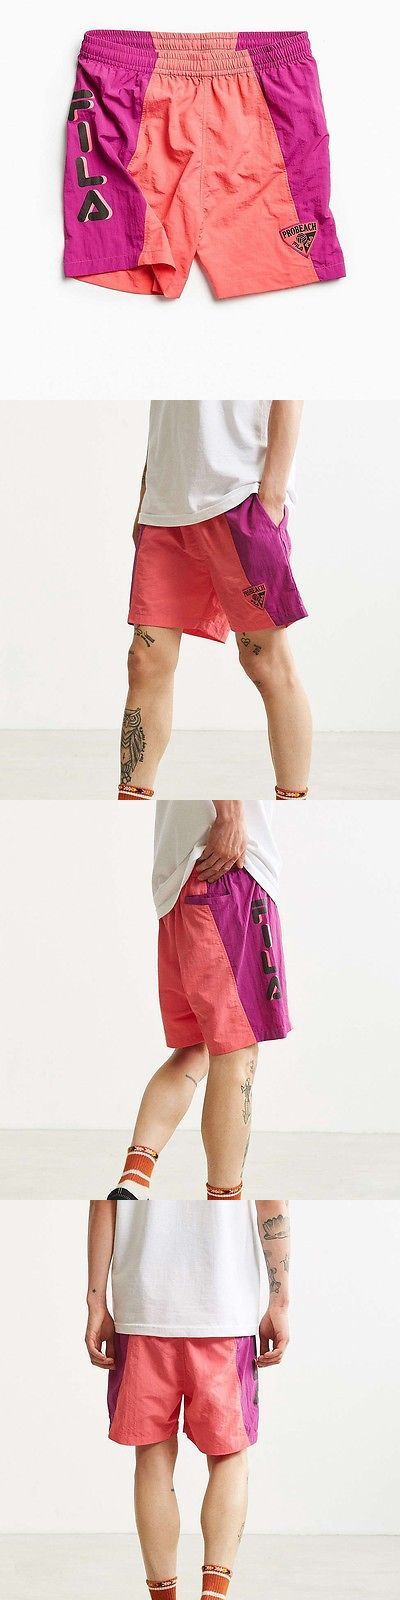 Shorts 59375: Urban Outfitters Mens Fila + Uo Perona Volleyball Short -> BUY IT NOW ONLY: $54 on eBay!